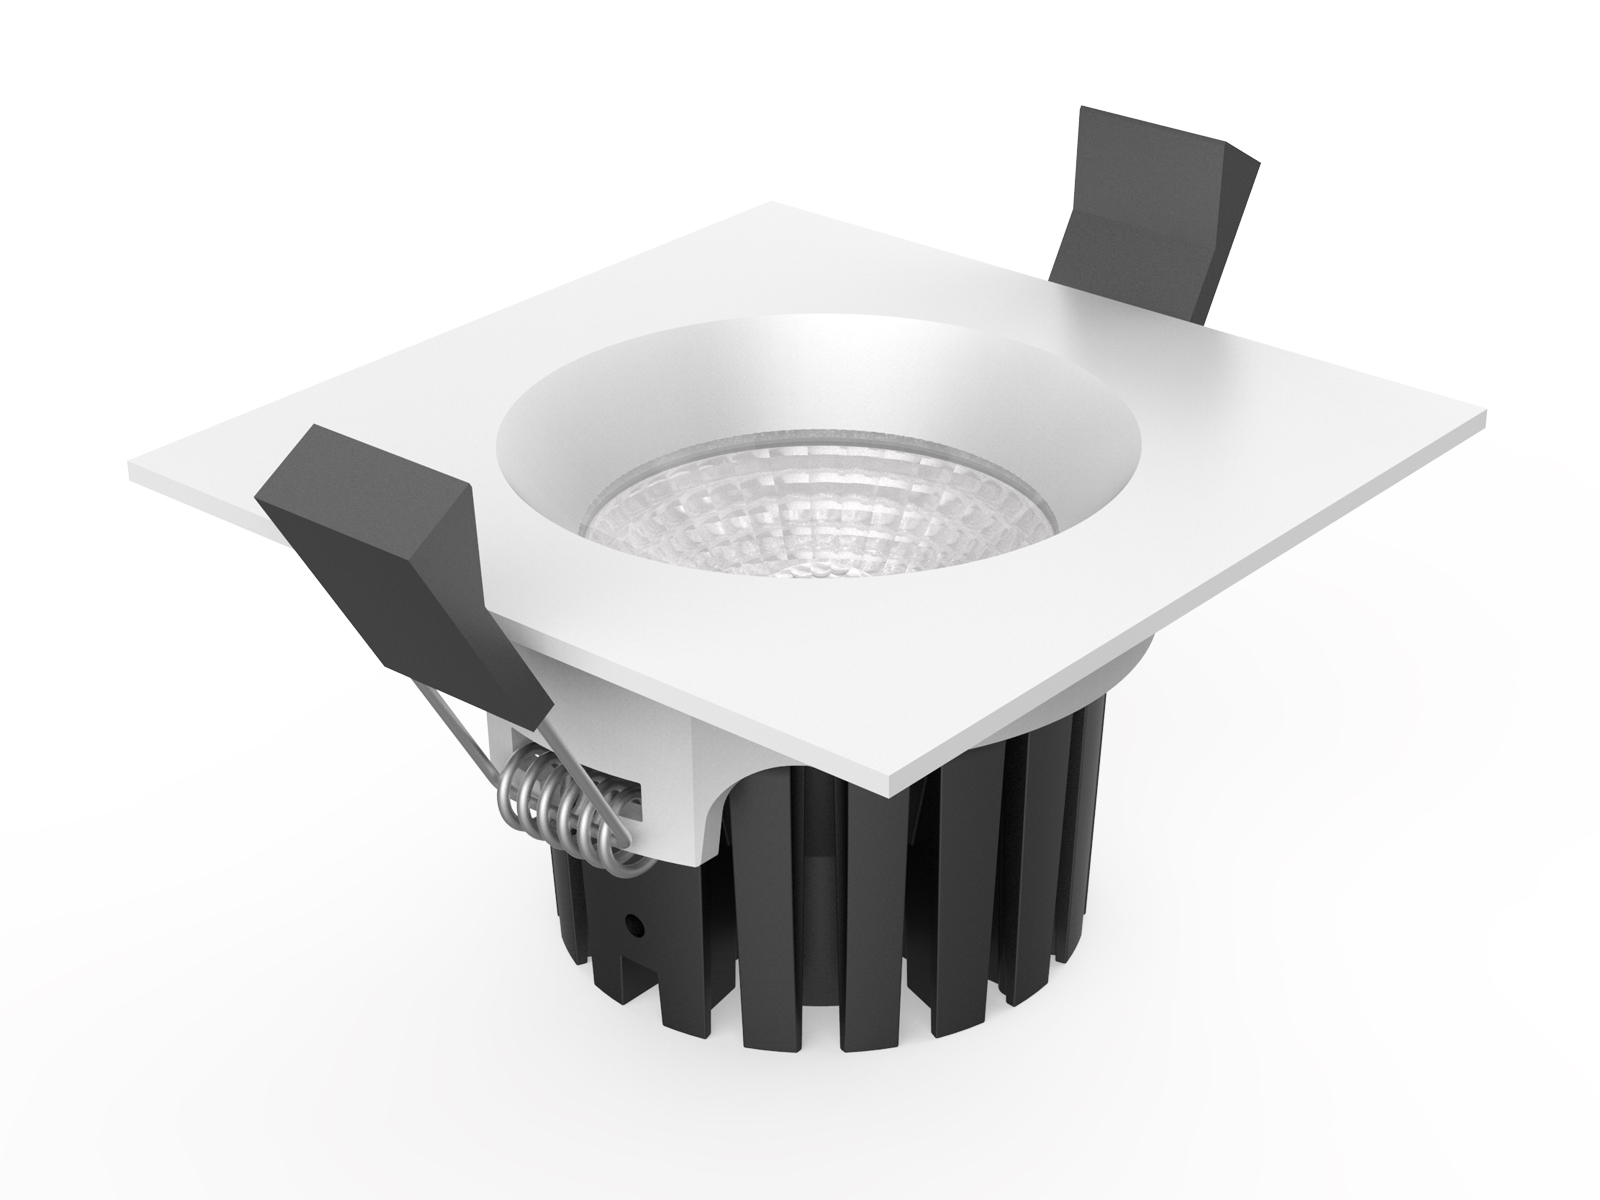 DL104 1 Recessed LED Downlight Fixture